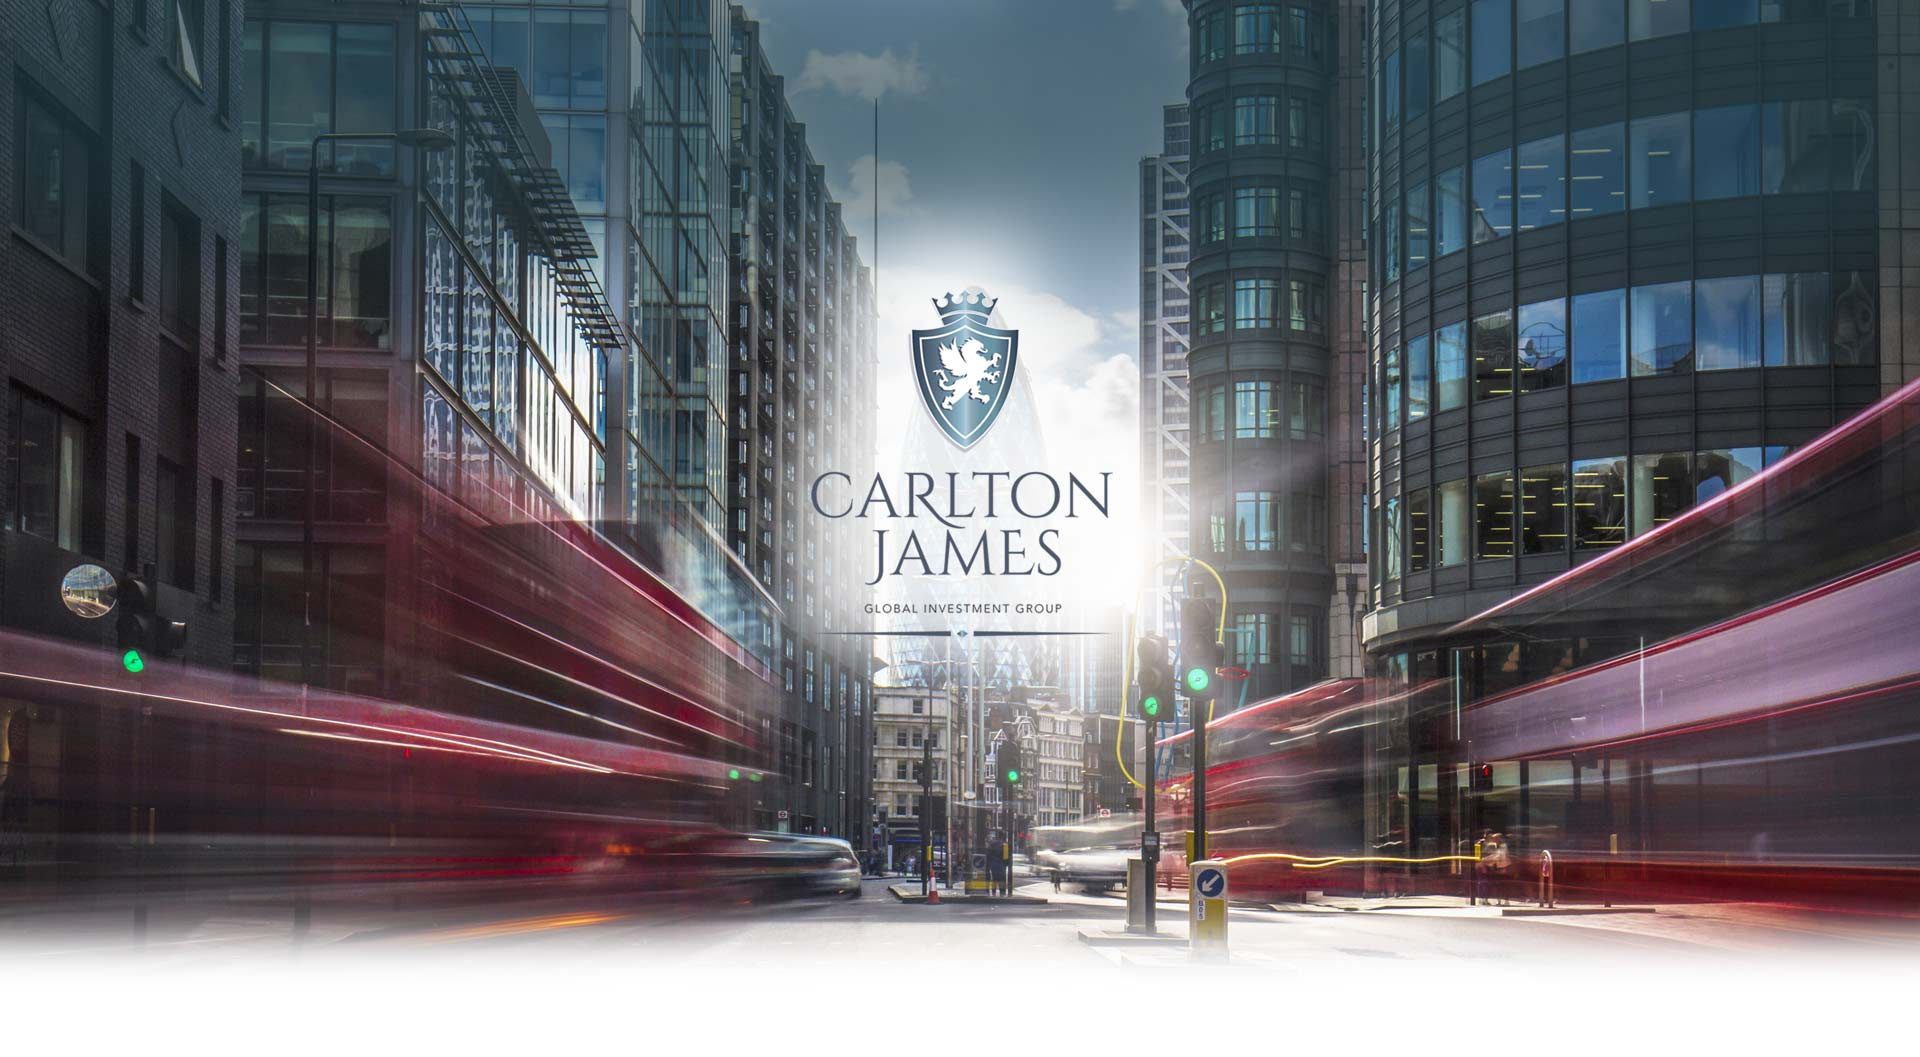 Carlton investment group recent development investment banking barclays computers